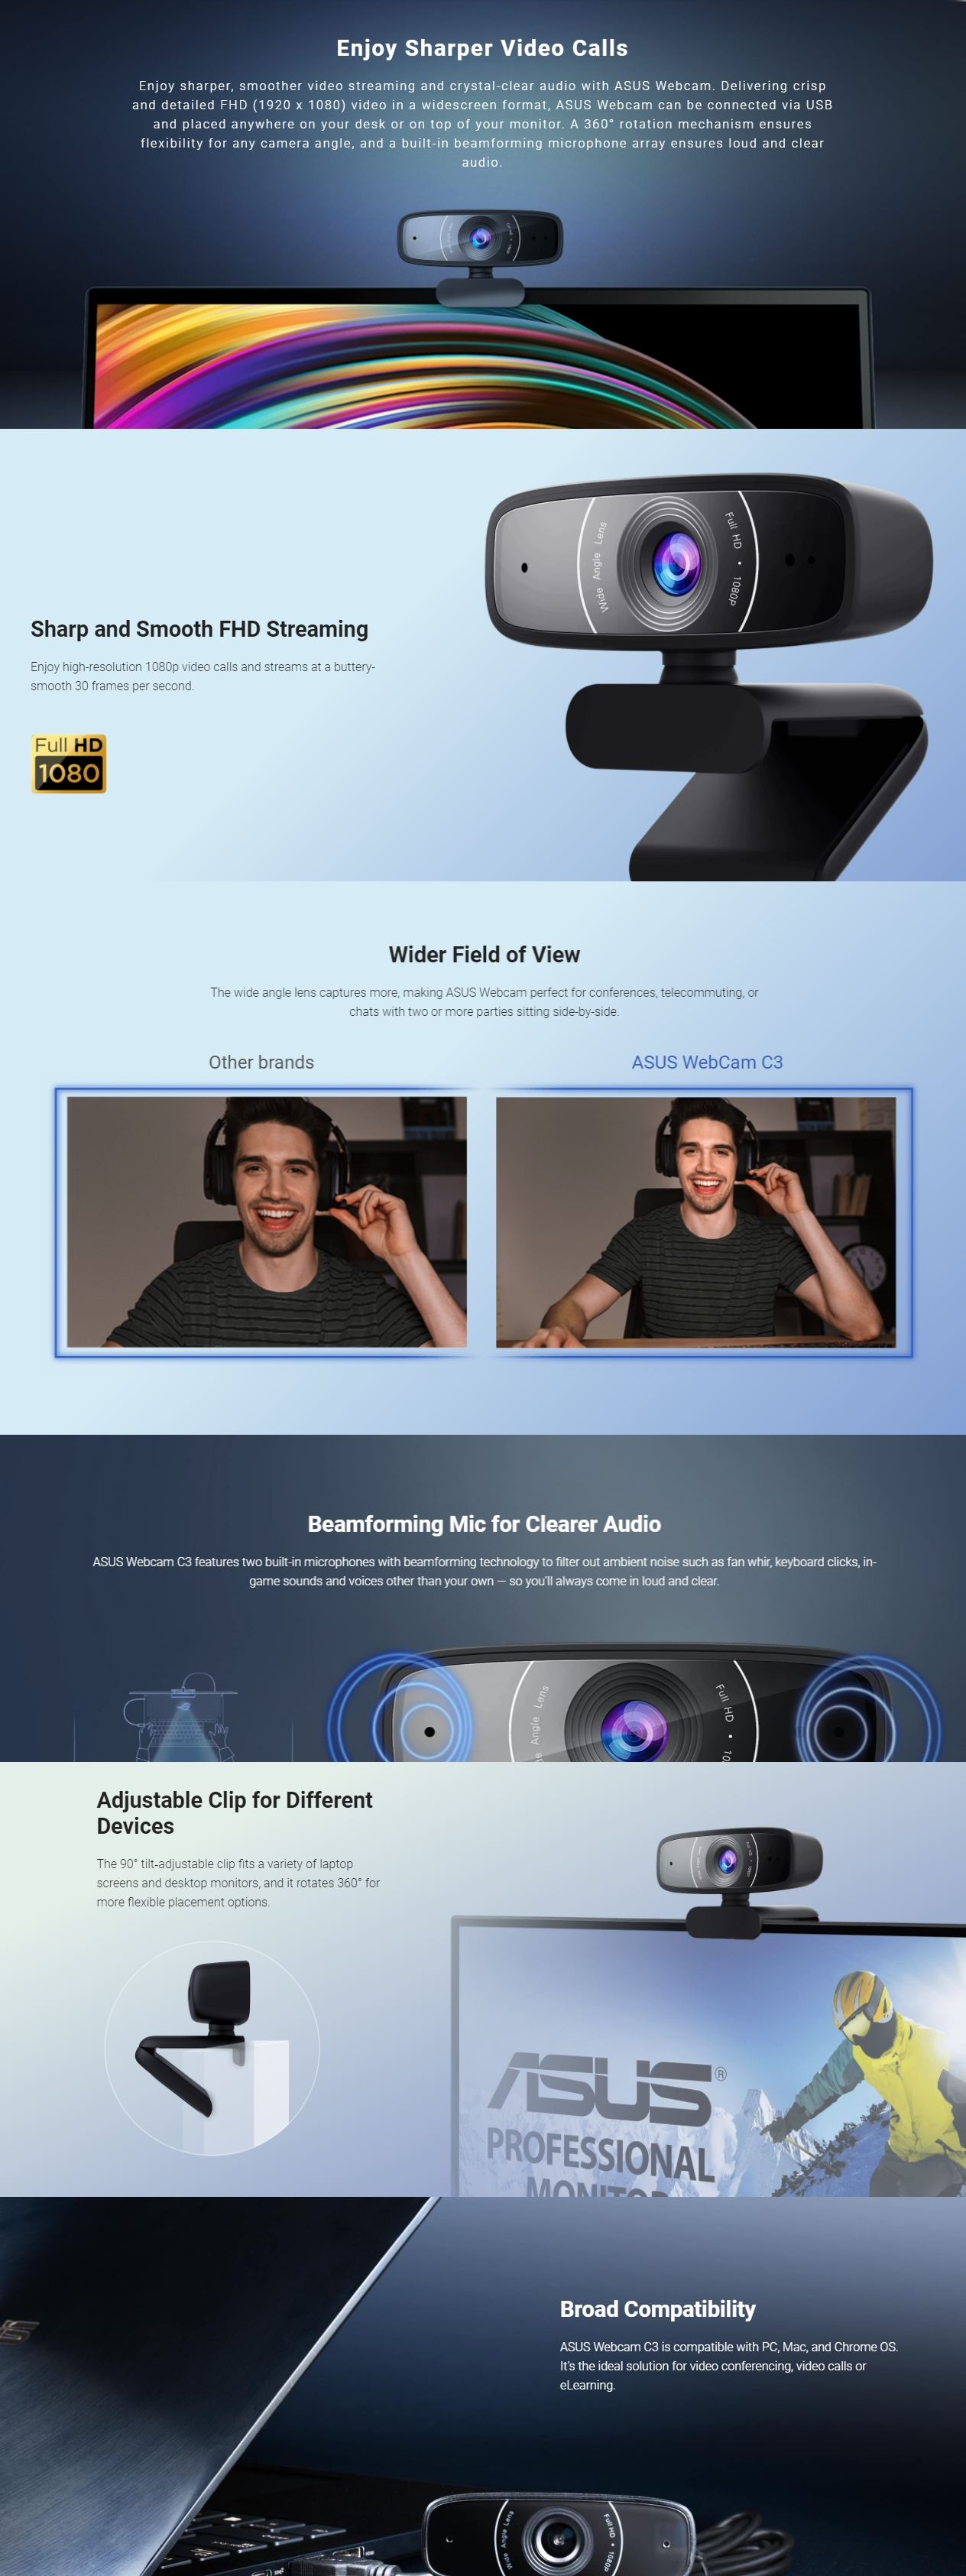 A large marketing image providing additional information about the product ASUS C3 1080p Webcam - Additional alt info not provided